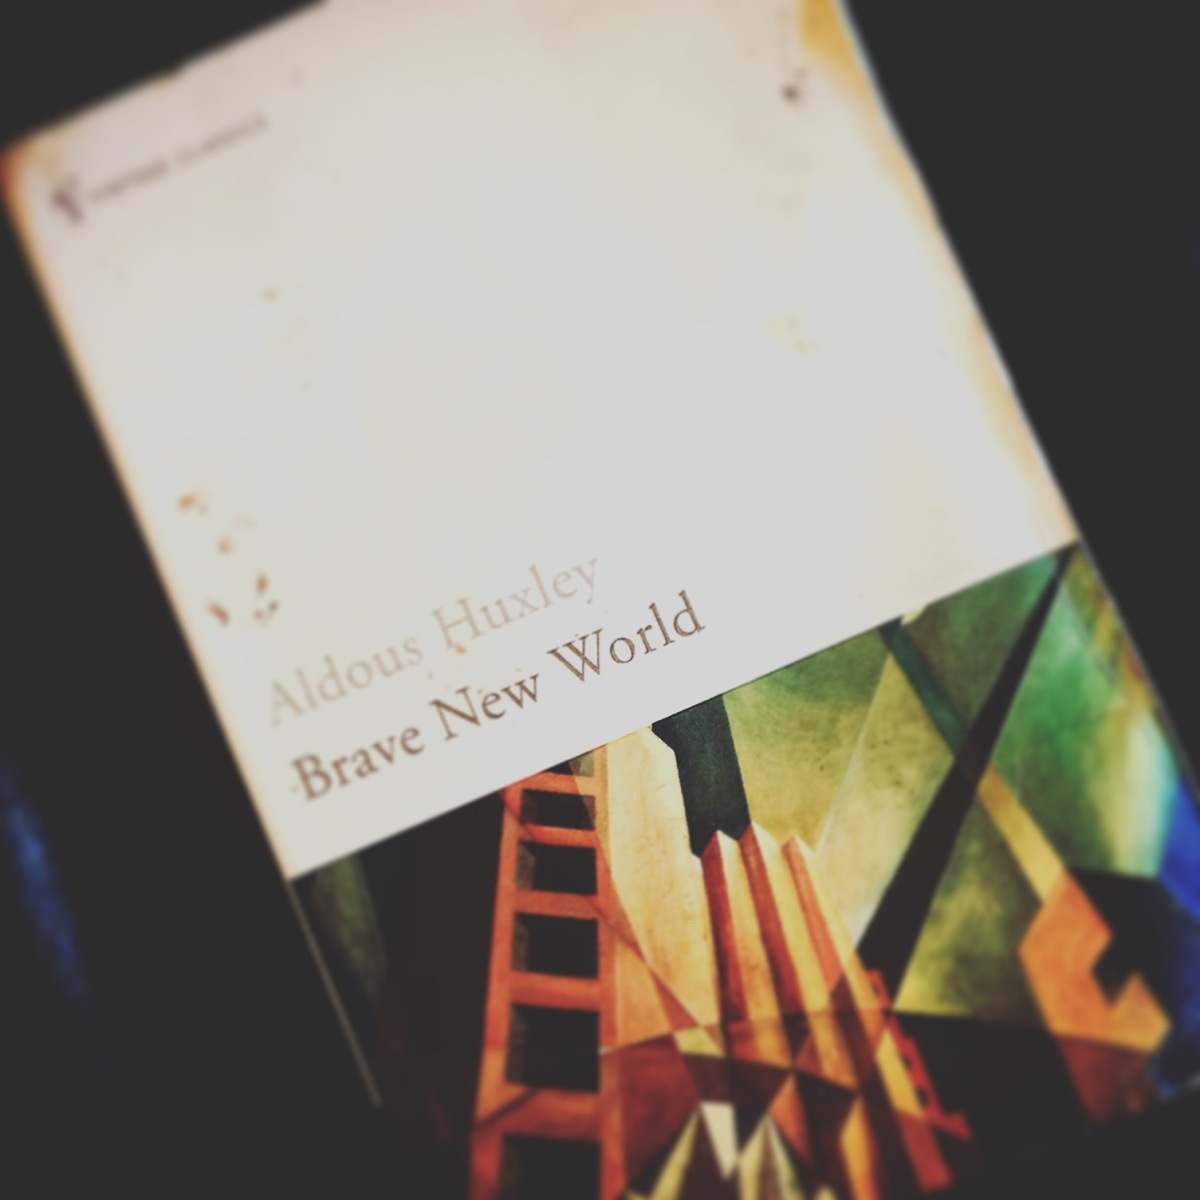 Book of da Week: Brave New World by Aldous Huxley